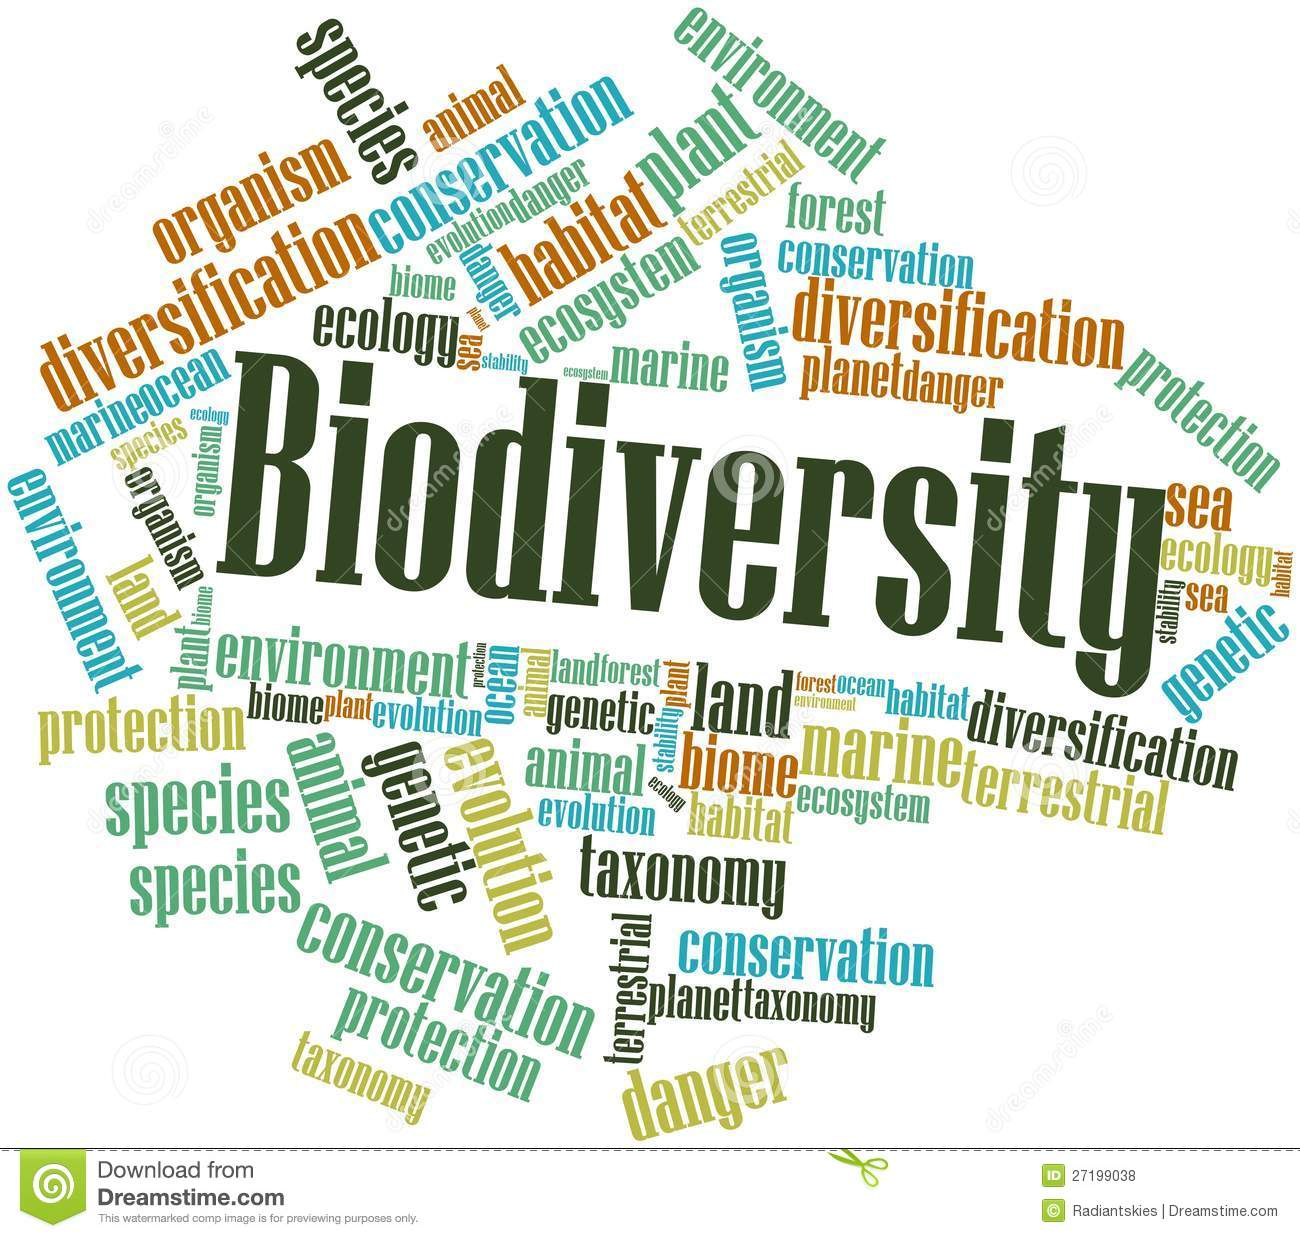 causes and consequences of reduced biodiversity Direct effects are mostly related to temperature and precipitation changes that  in the recent past, the proximate causes of biodiversity loss, such as logging and .